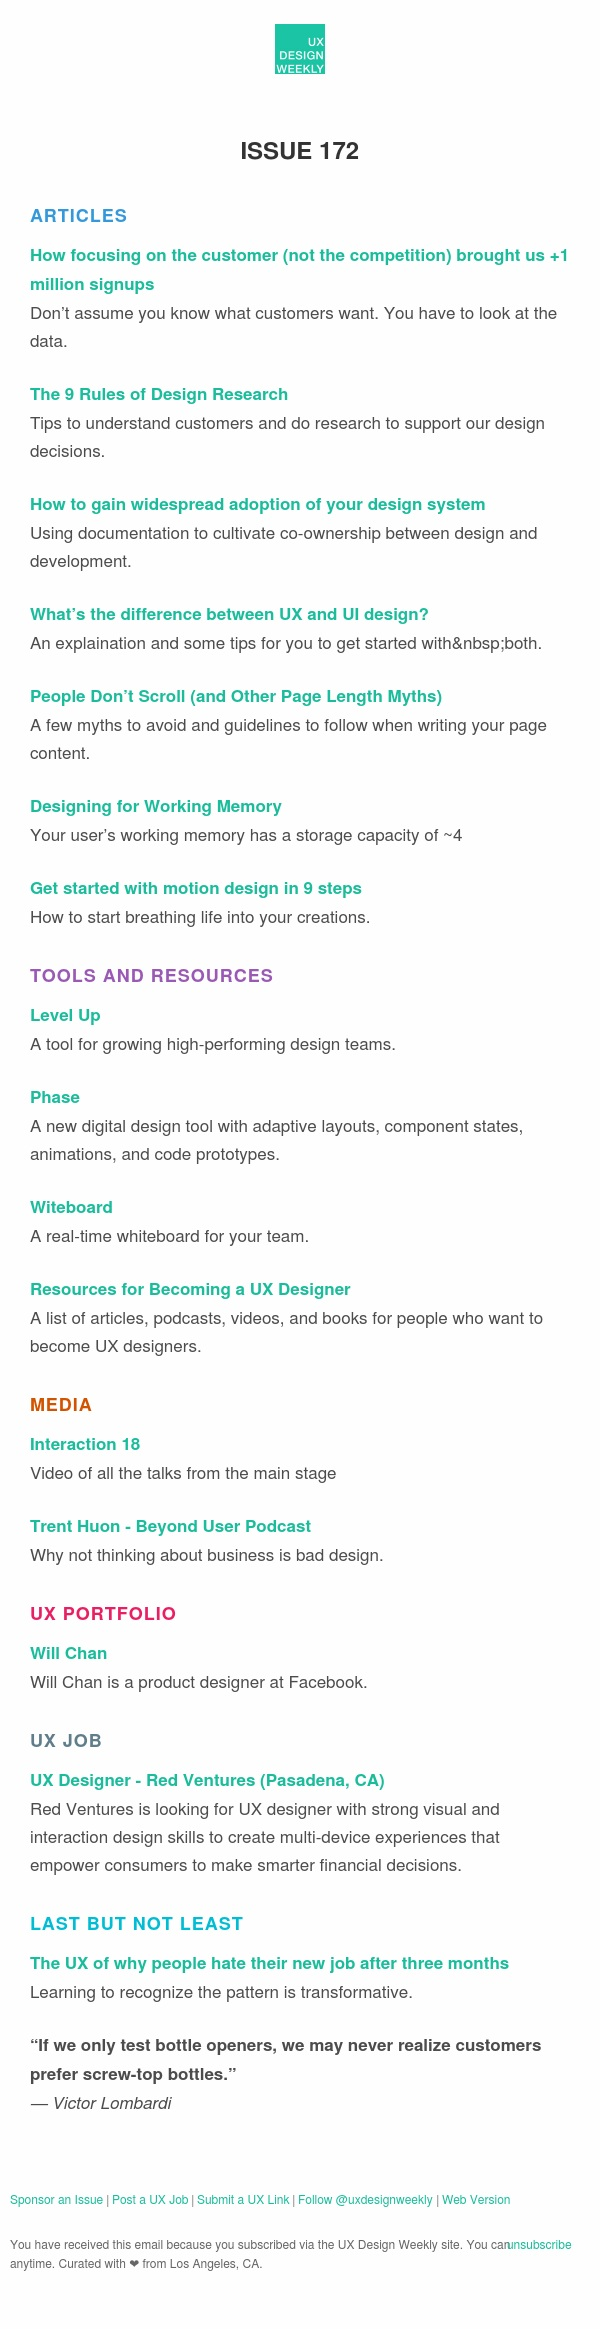 UX Design Weekly #172: Focusing on the Customer, Rules of Design Research, Interaction 18